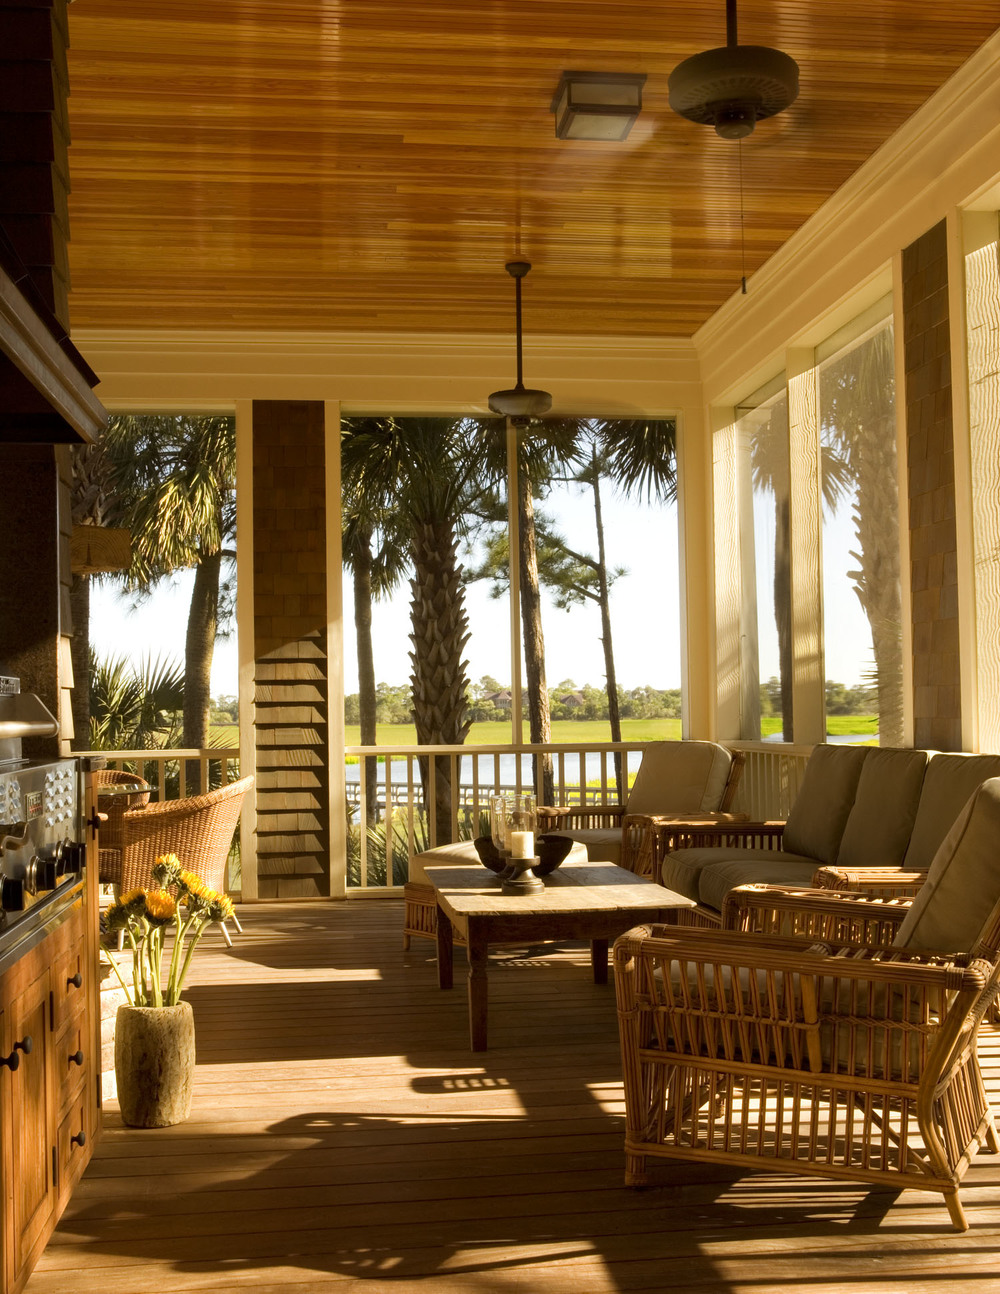 Island Architects Bass Creek_Porch2-HighRes.jpg